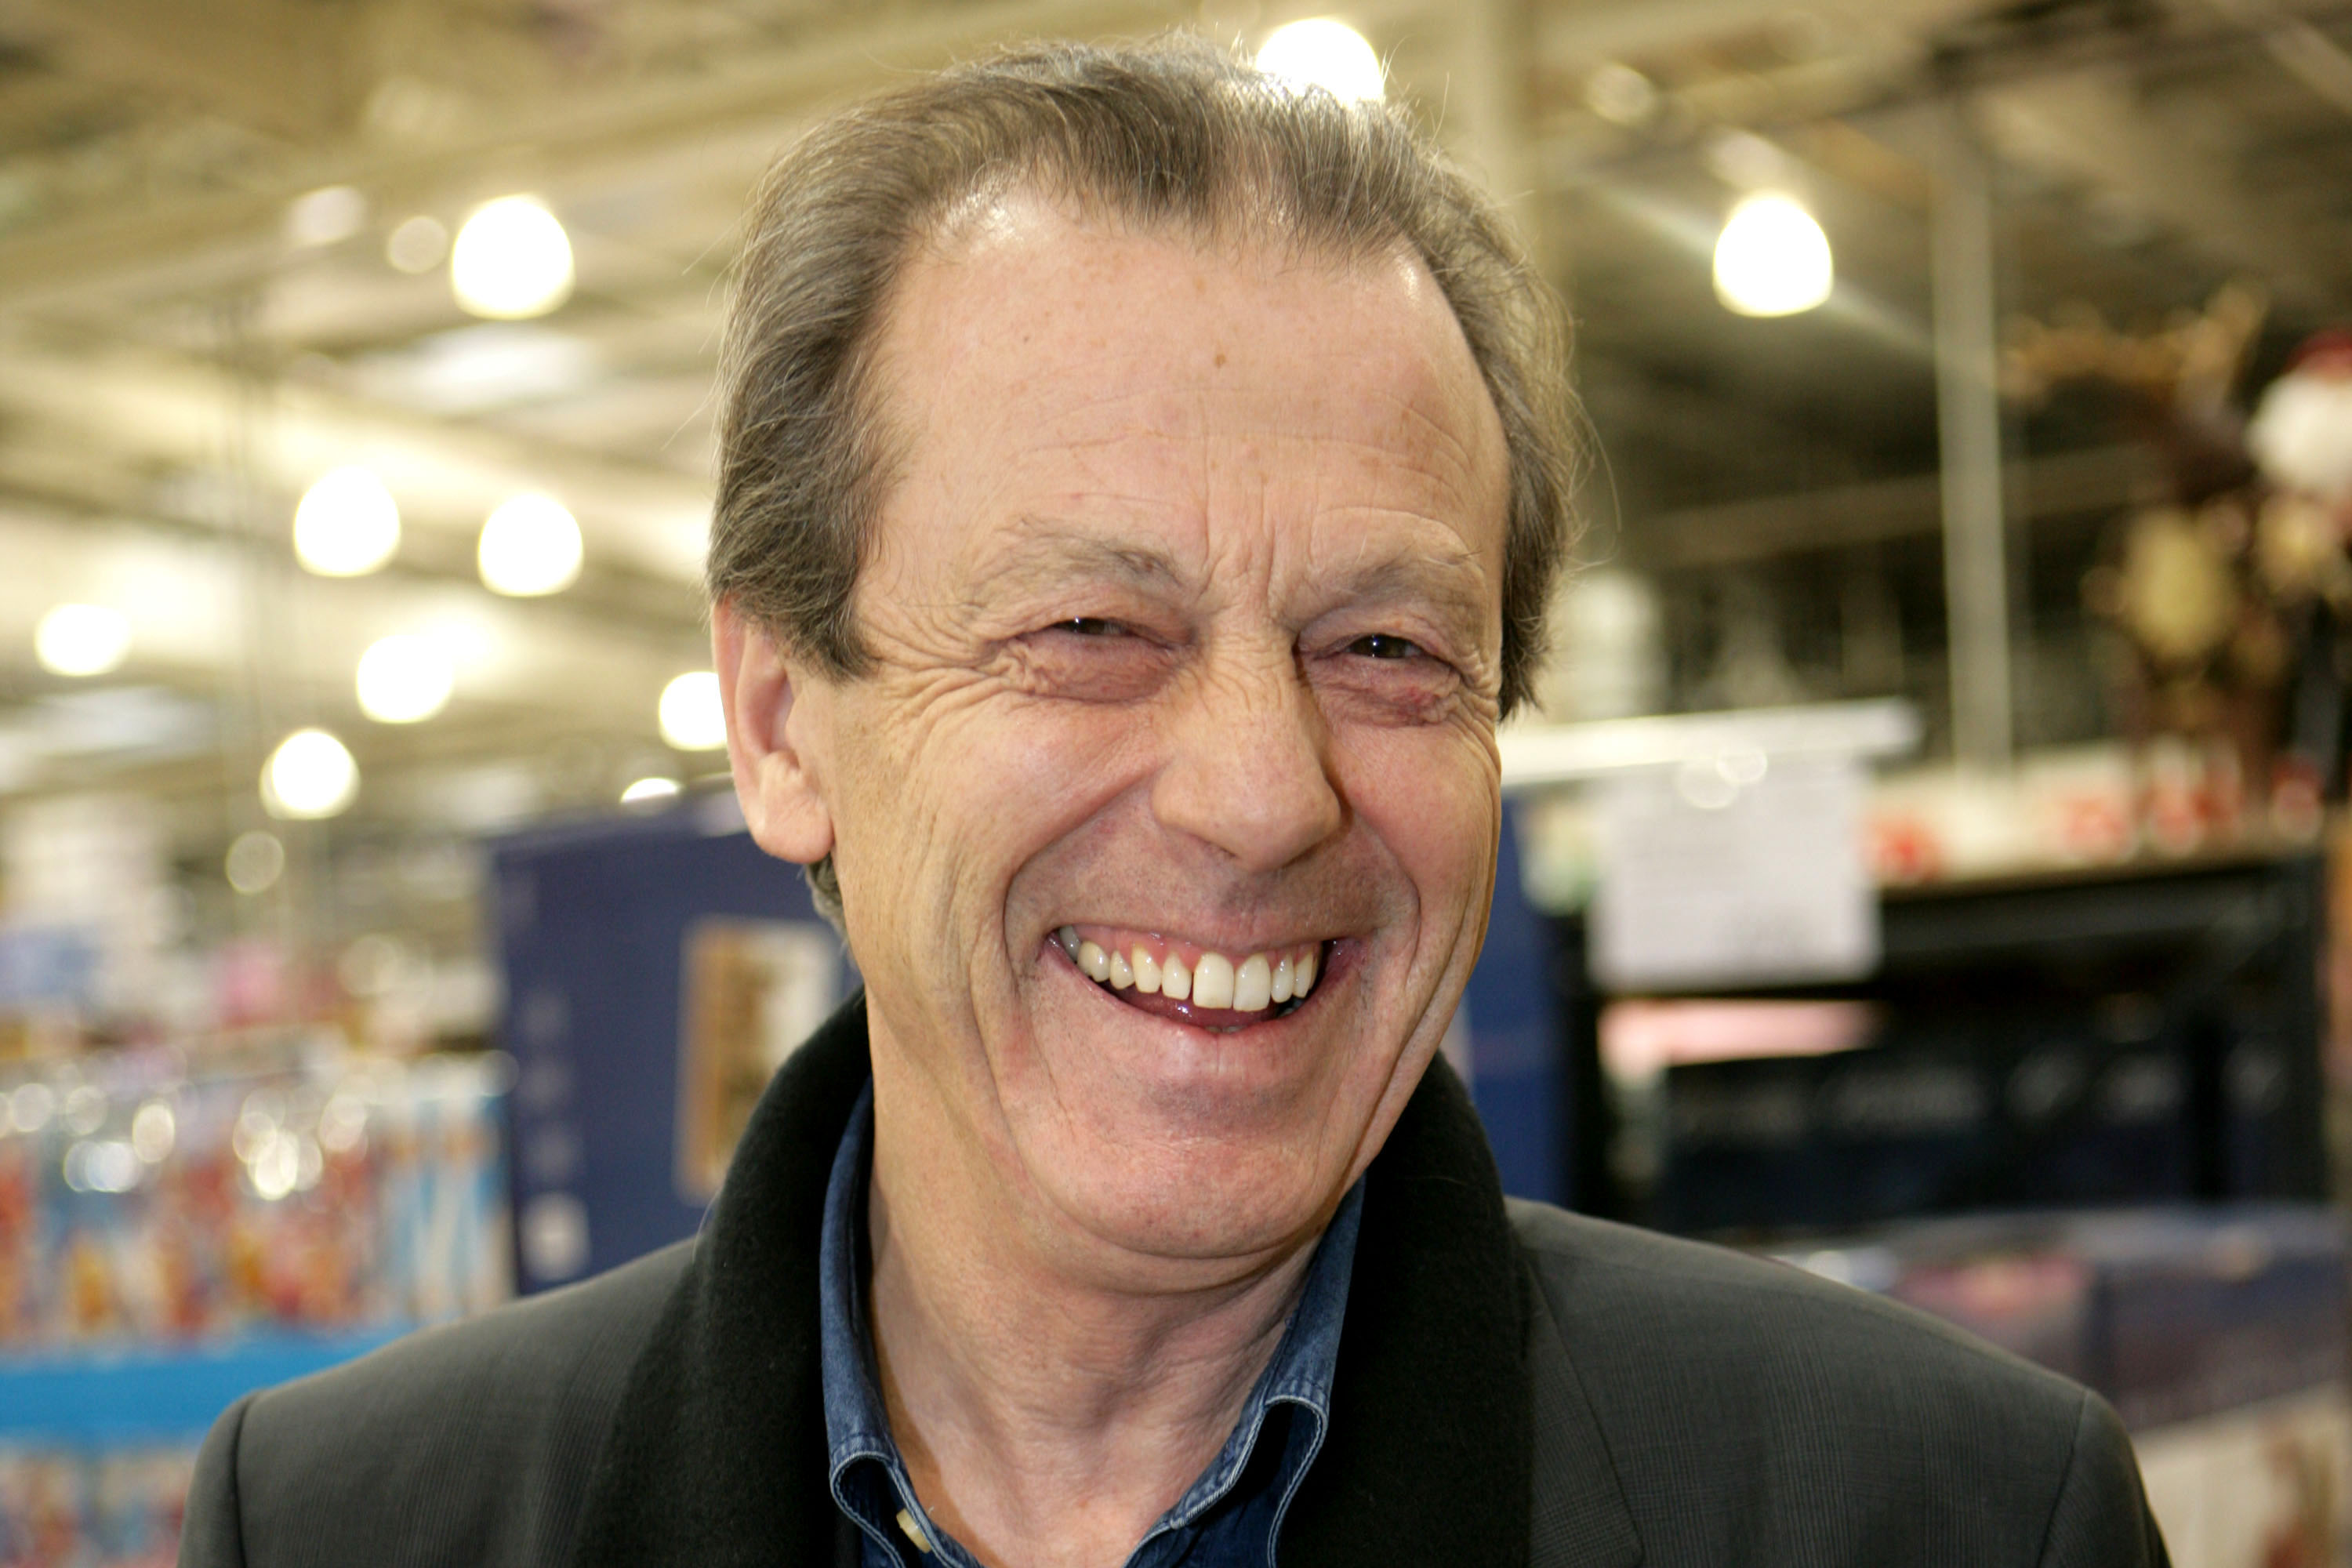 Leslie Grantham age, height, family, role as EastEnders' Dirty Den and the latest on his health